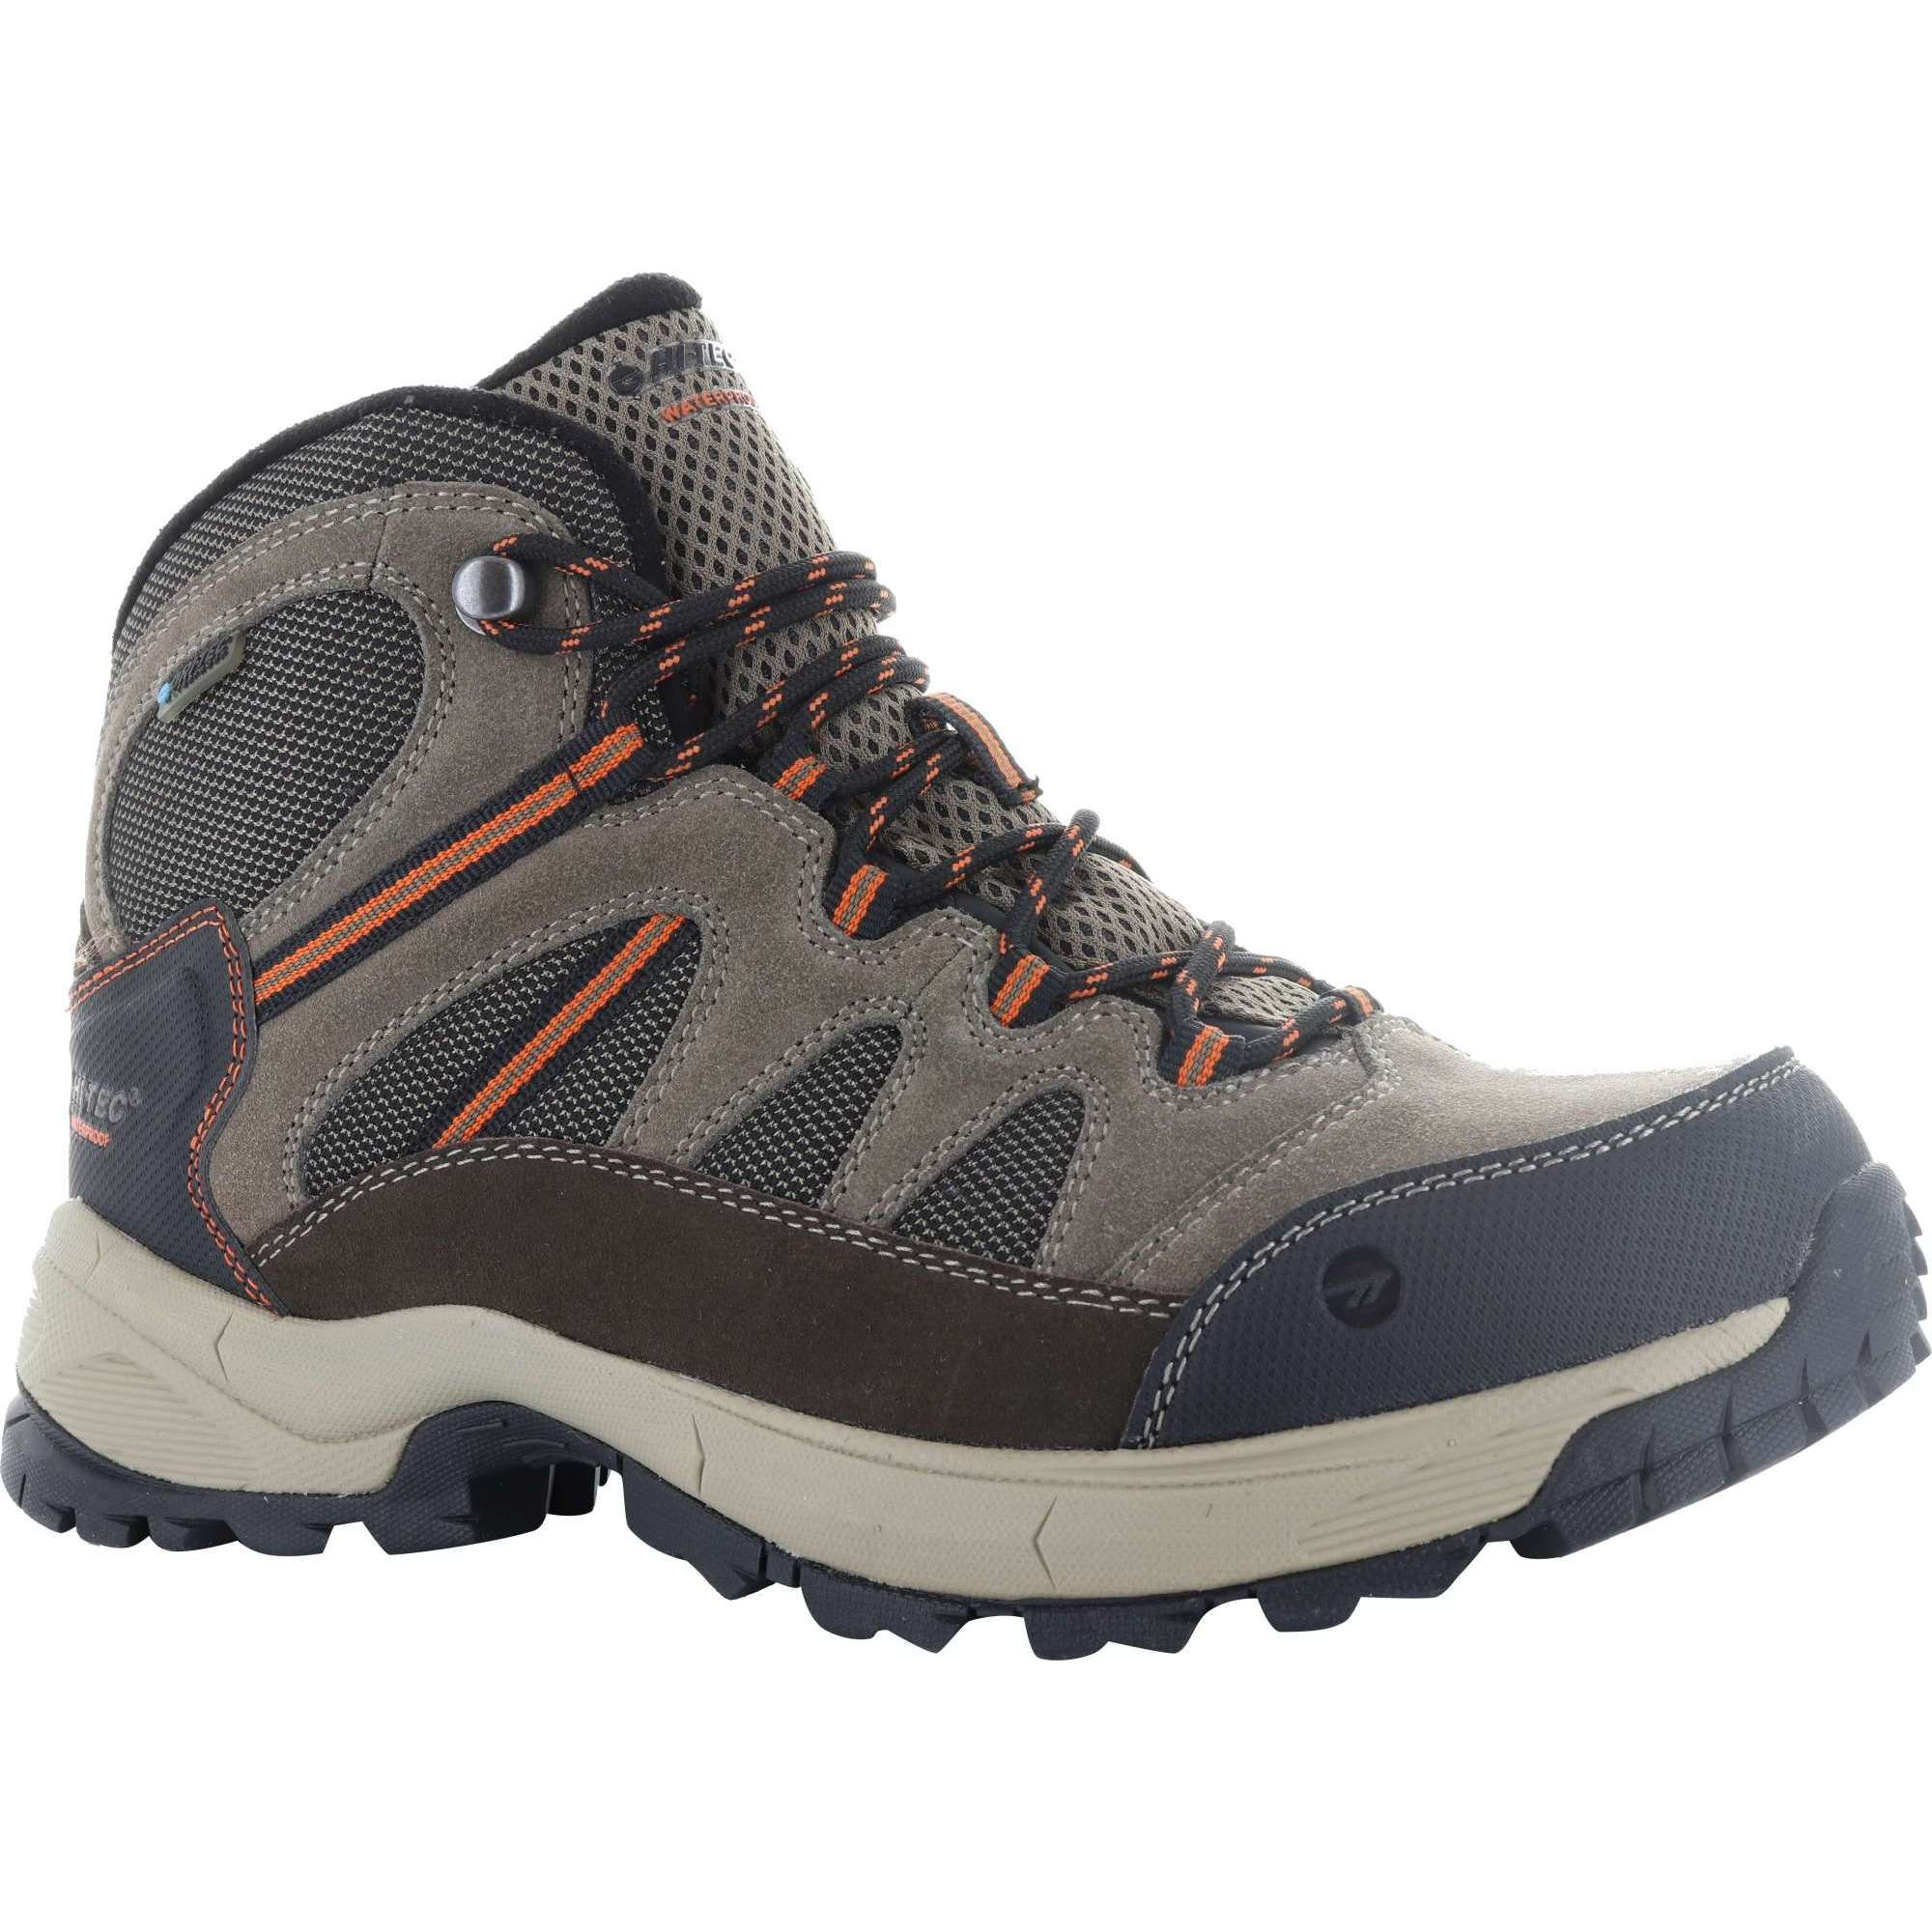 f801f8d4830 Hi-Tec Bandera Lite Chocolate Brown Waterproof Boots | Work & Wear Direct